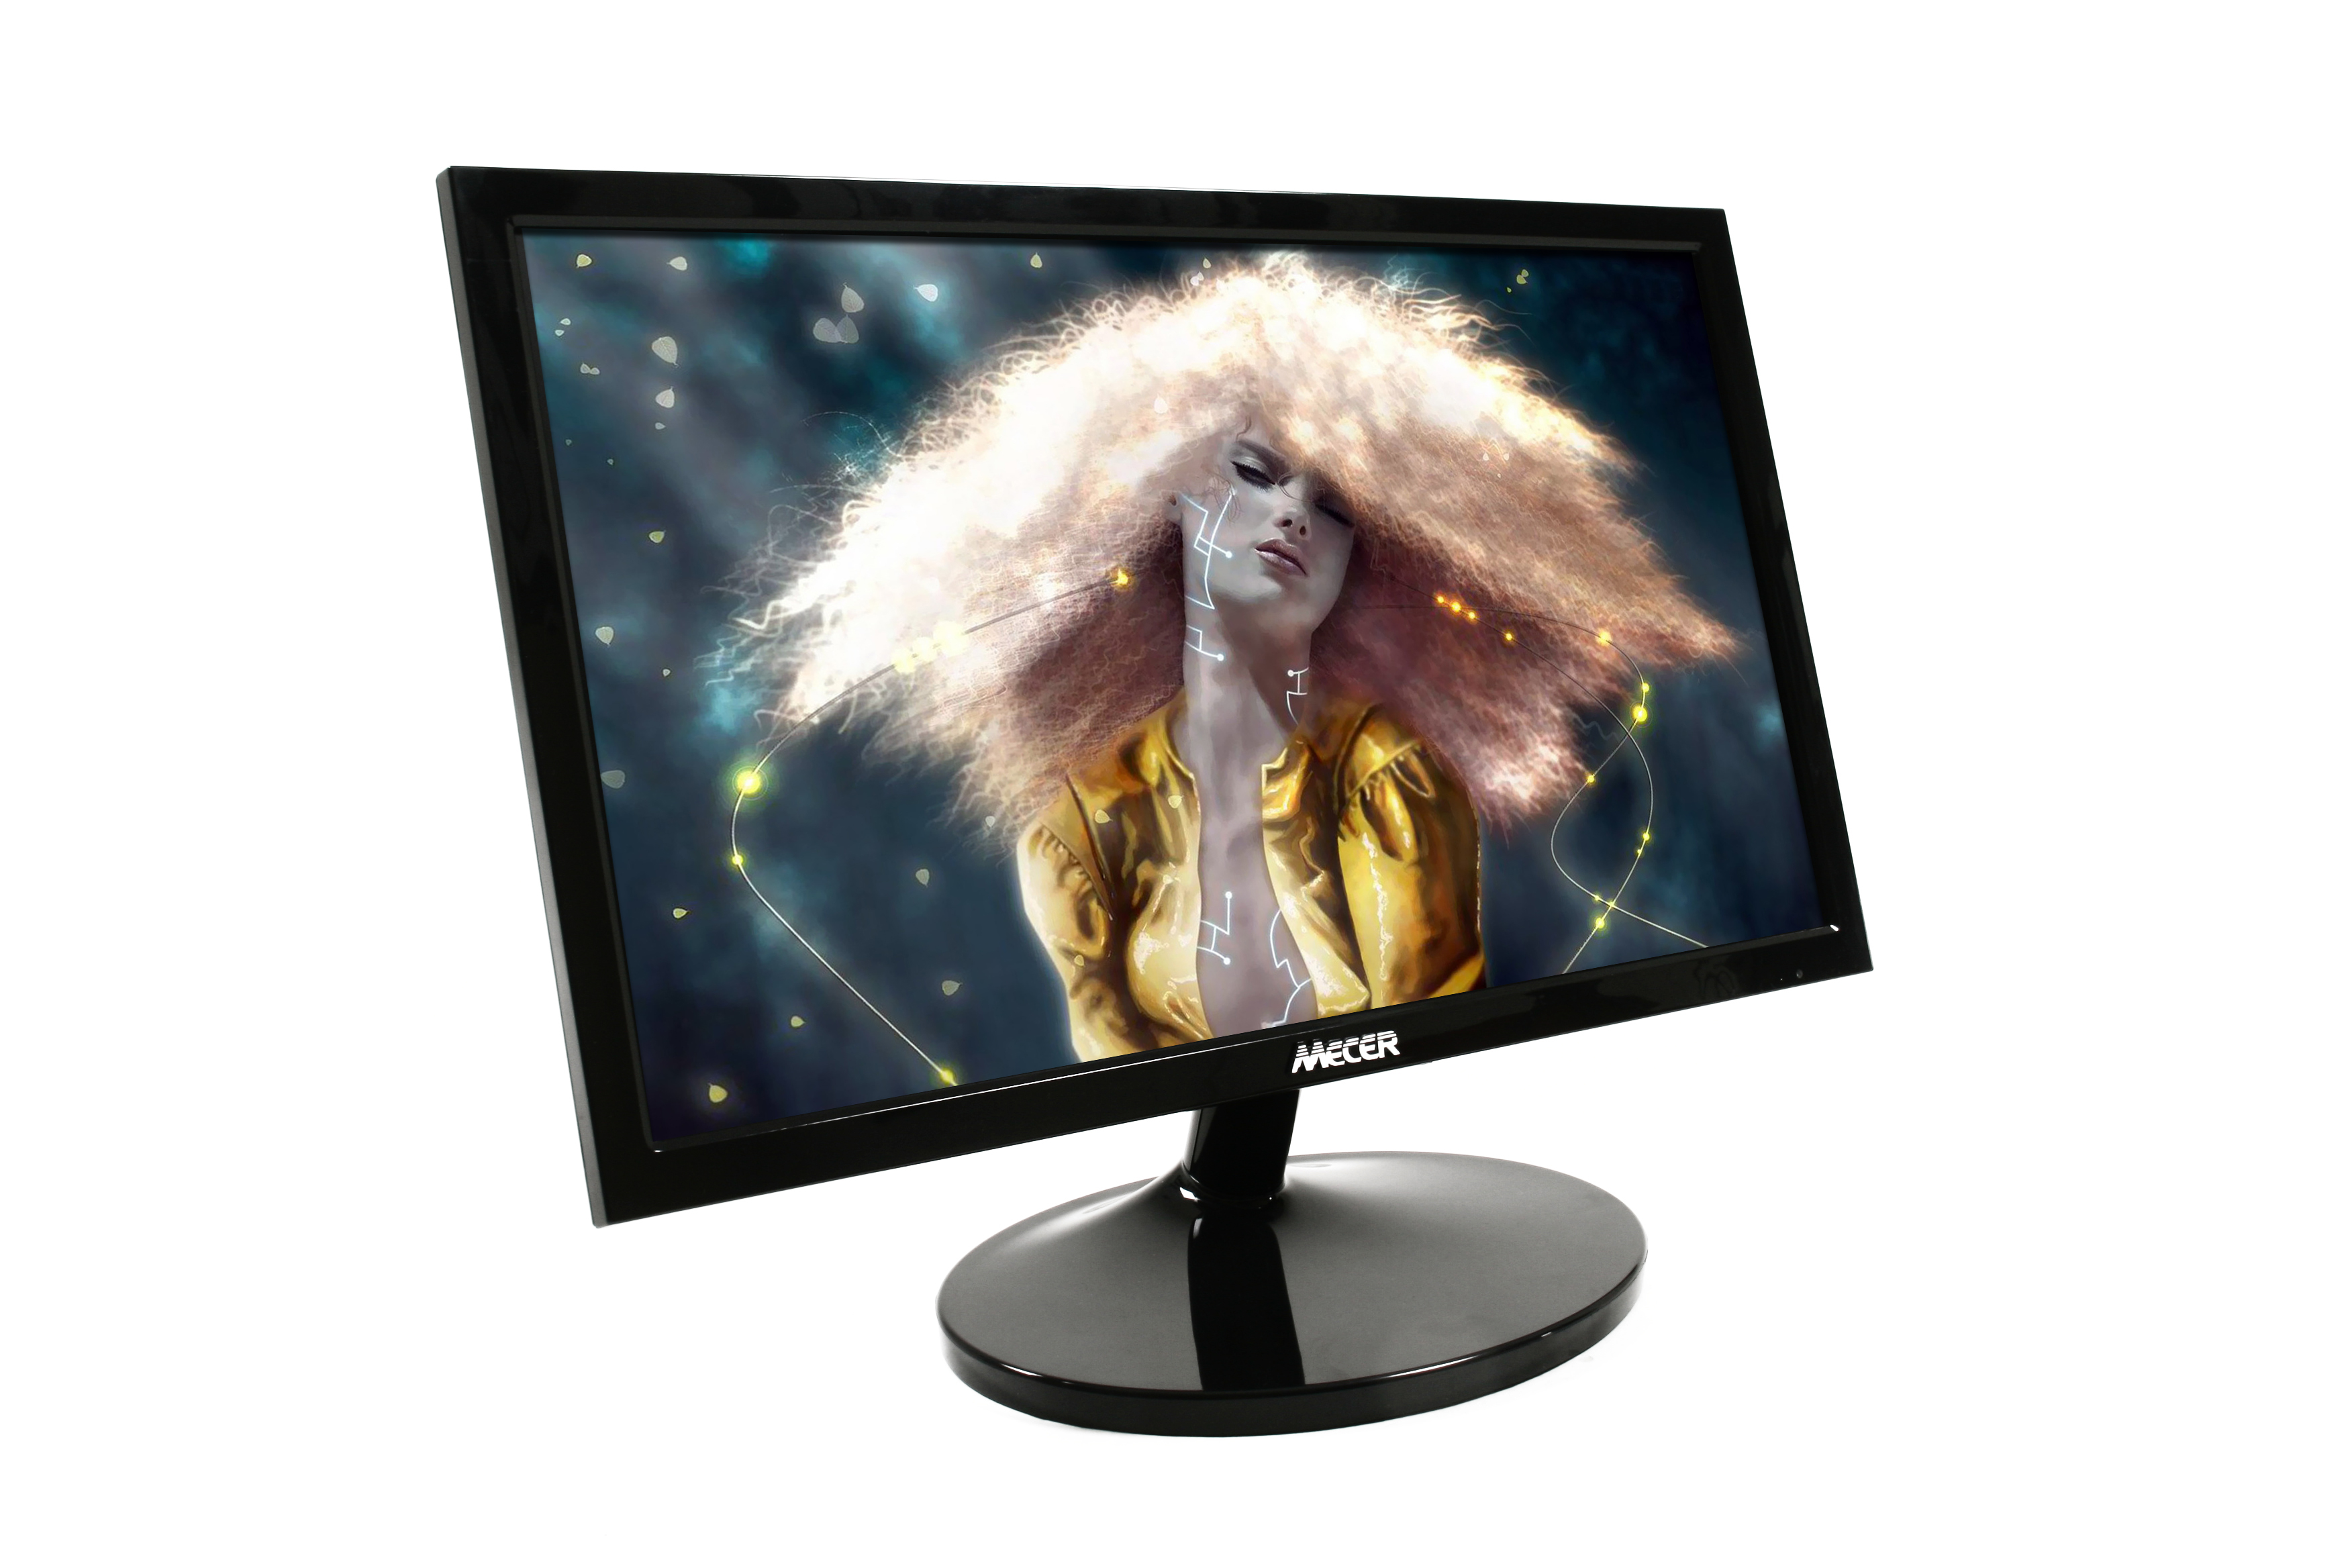 Mecer 18.5″ 16 x 9 TFT LED Wide Monitor